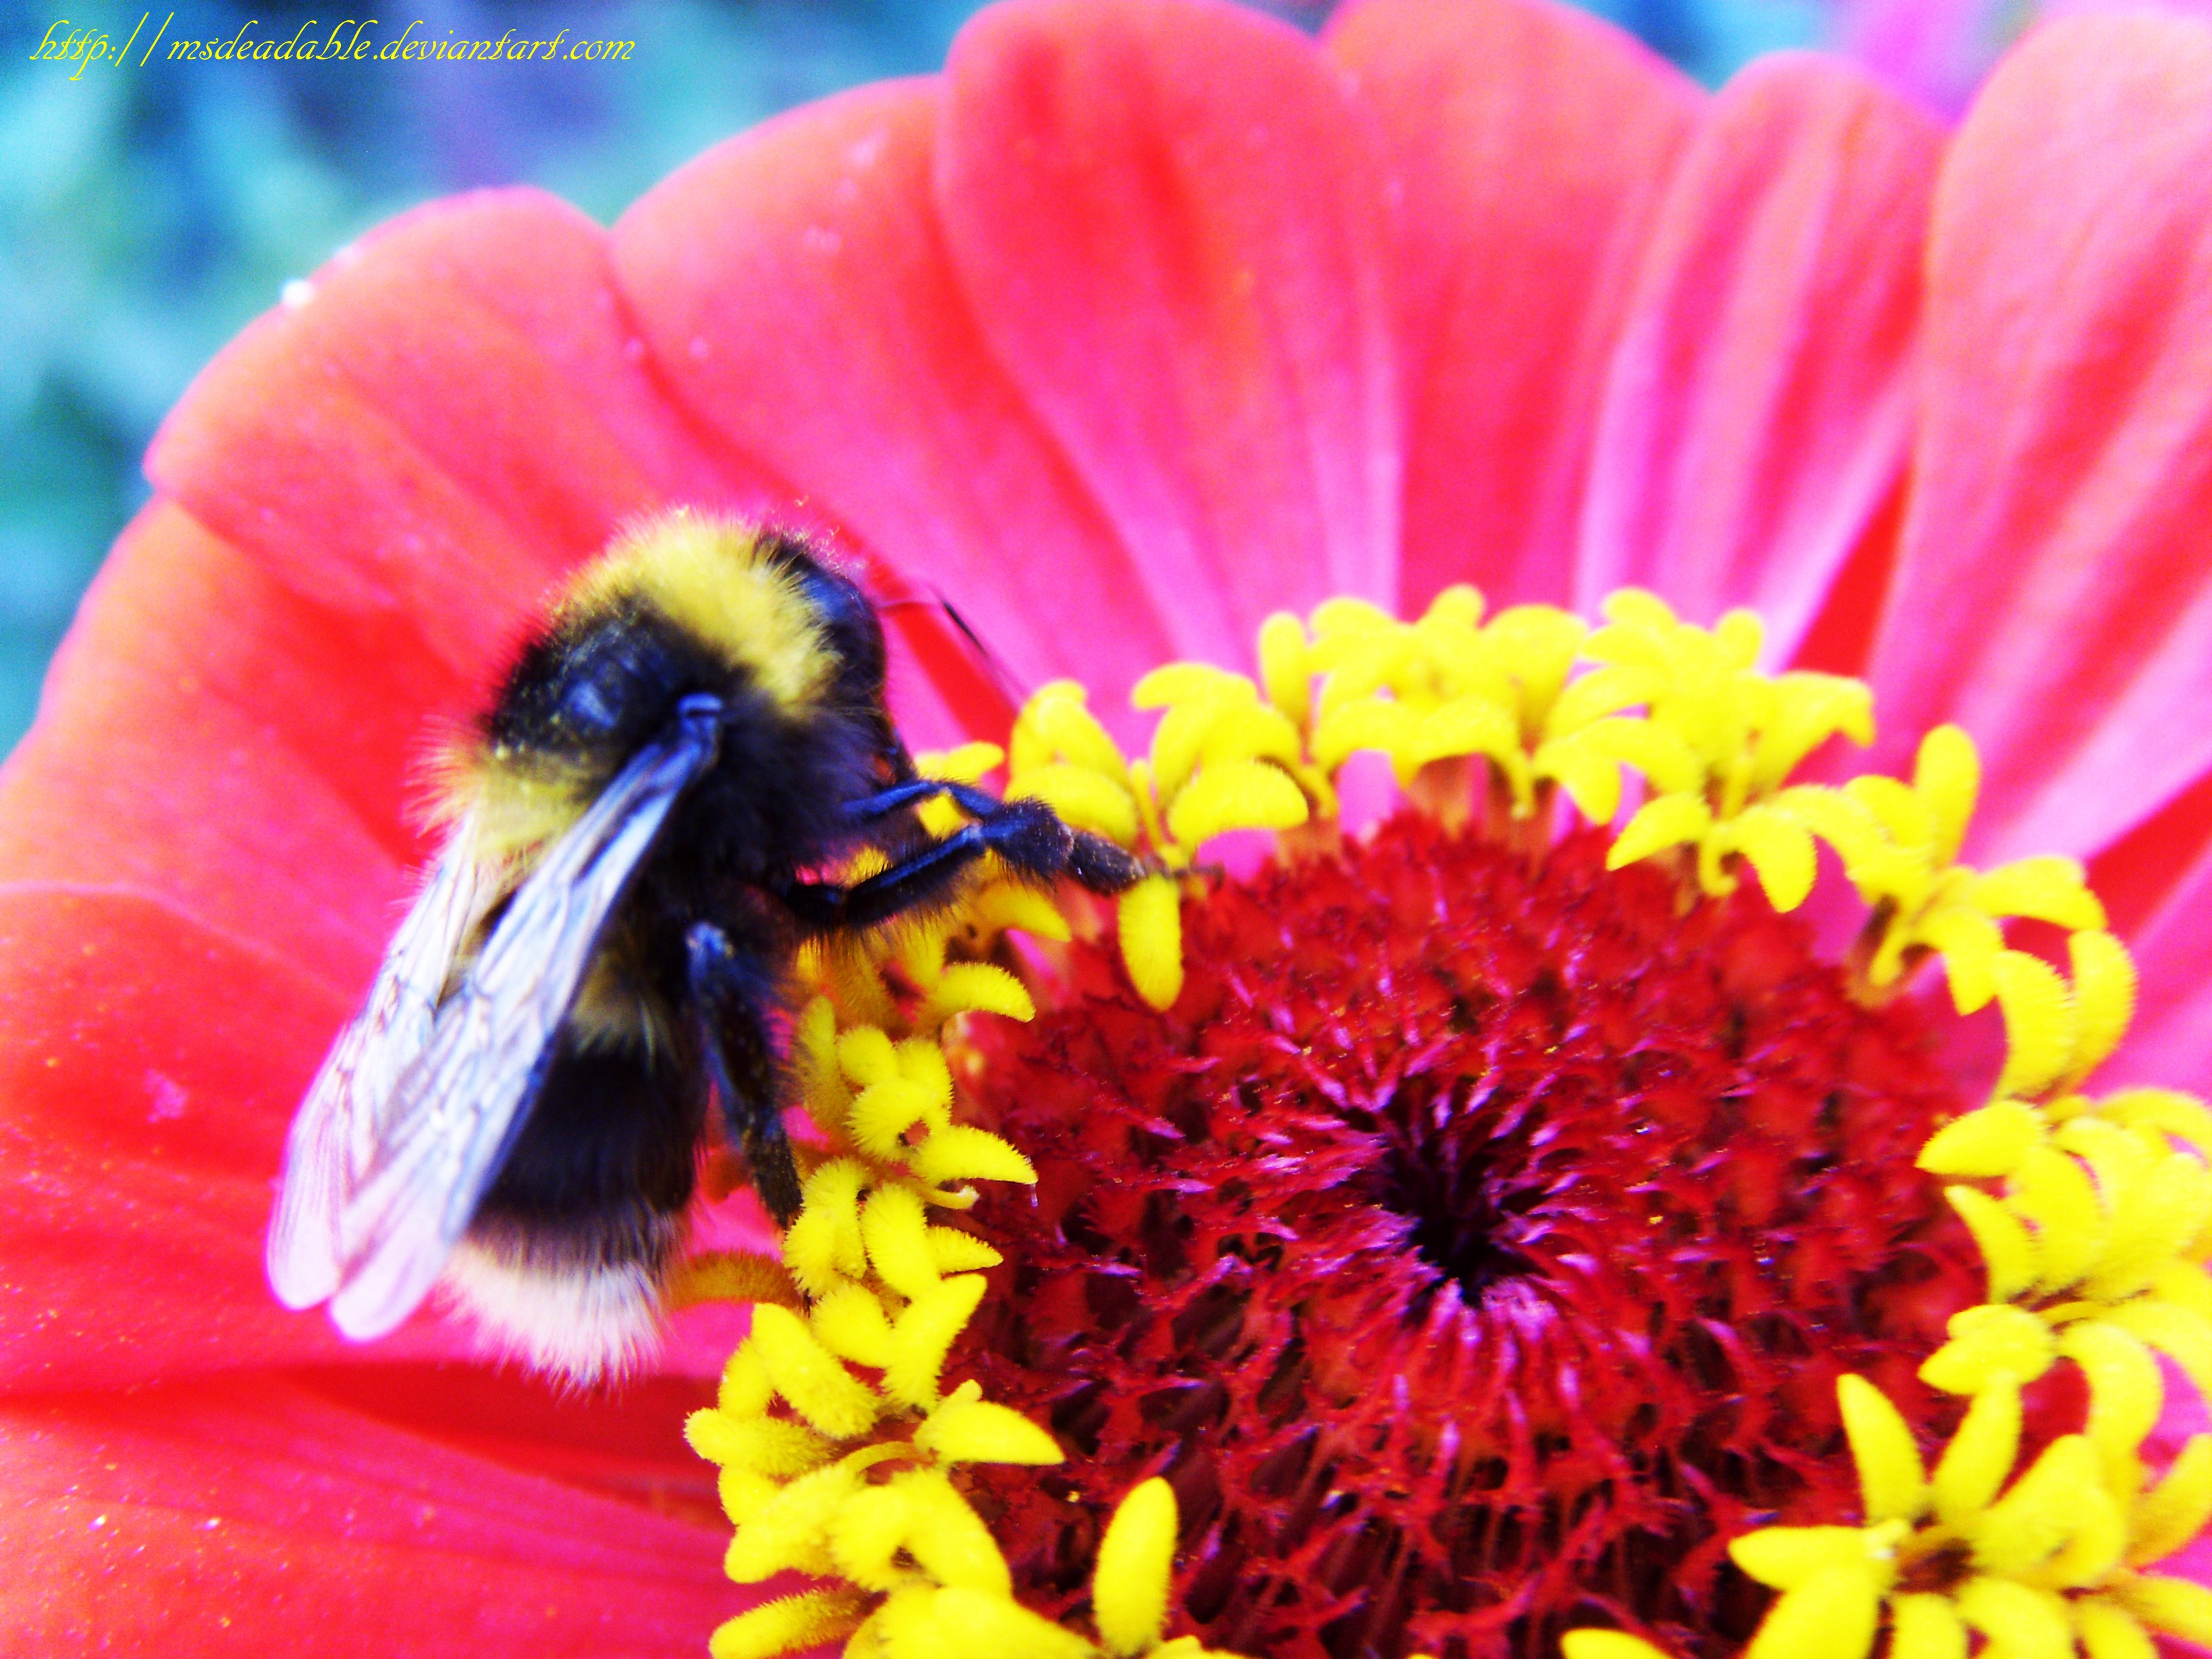 Bumblebee On The Flower by MsDeadable